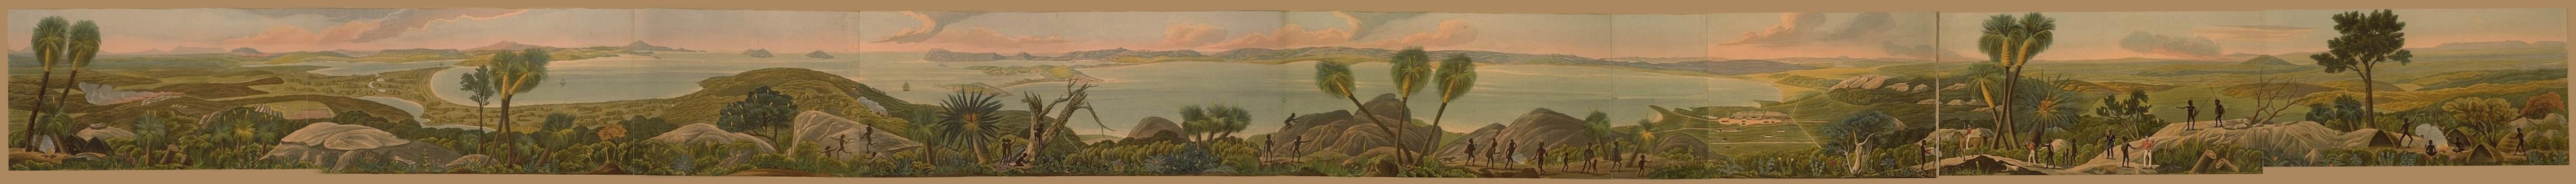 Descriptive Account of the Panoramic View of King George's Sound - Panoramic View of King George's Sound [Composite] (1834)